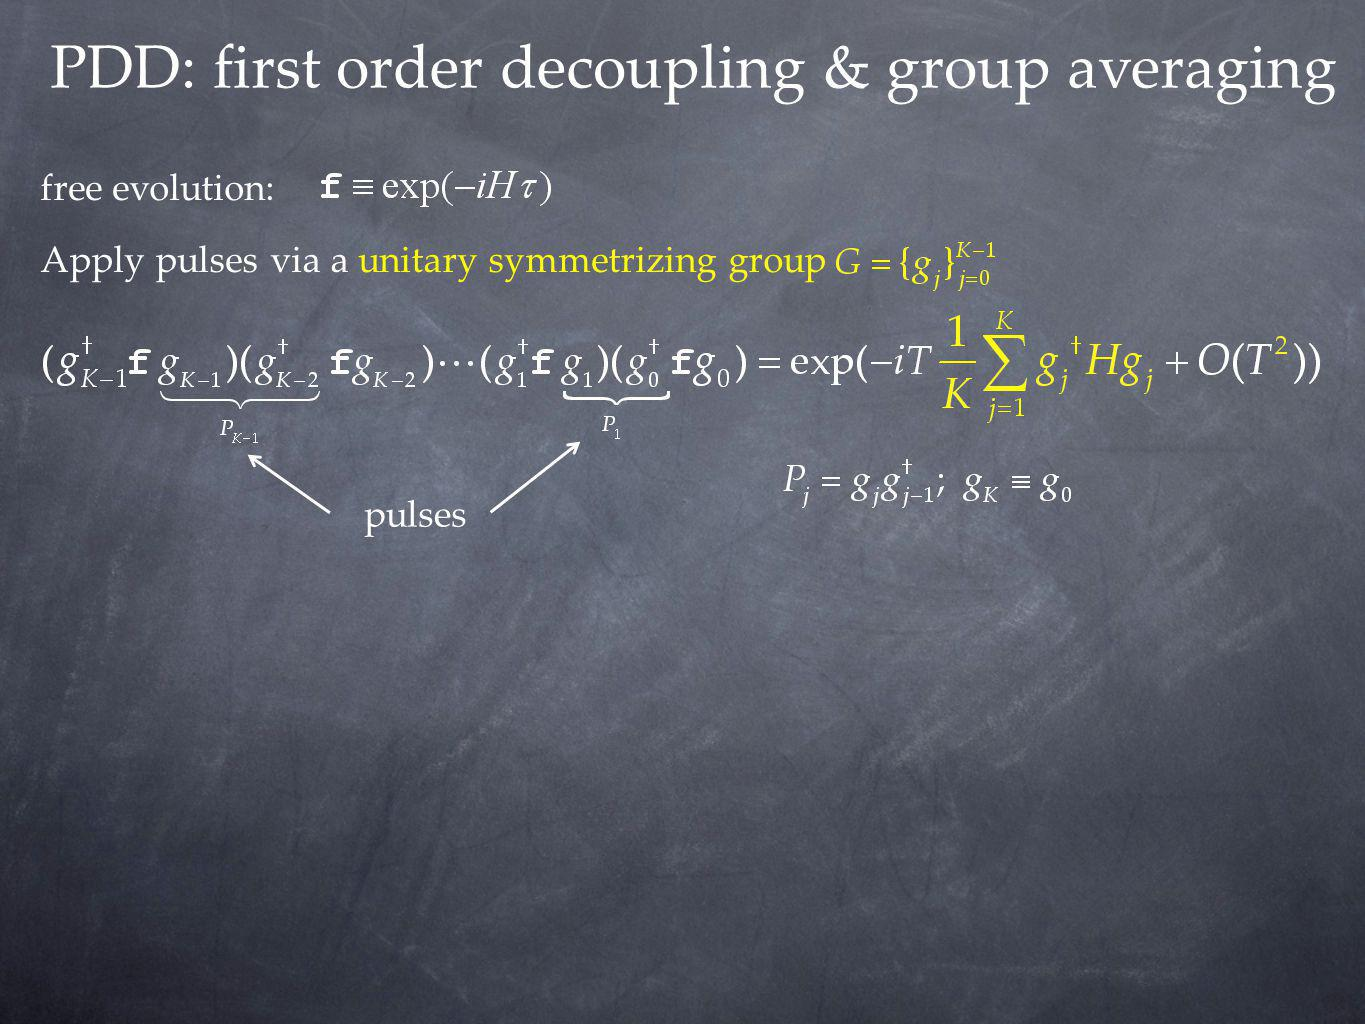 PDD: first order decoupling & group averaging